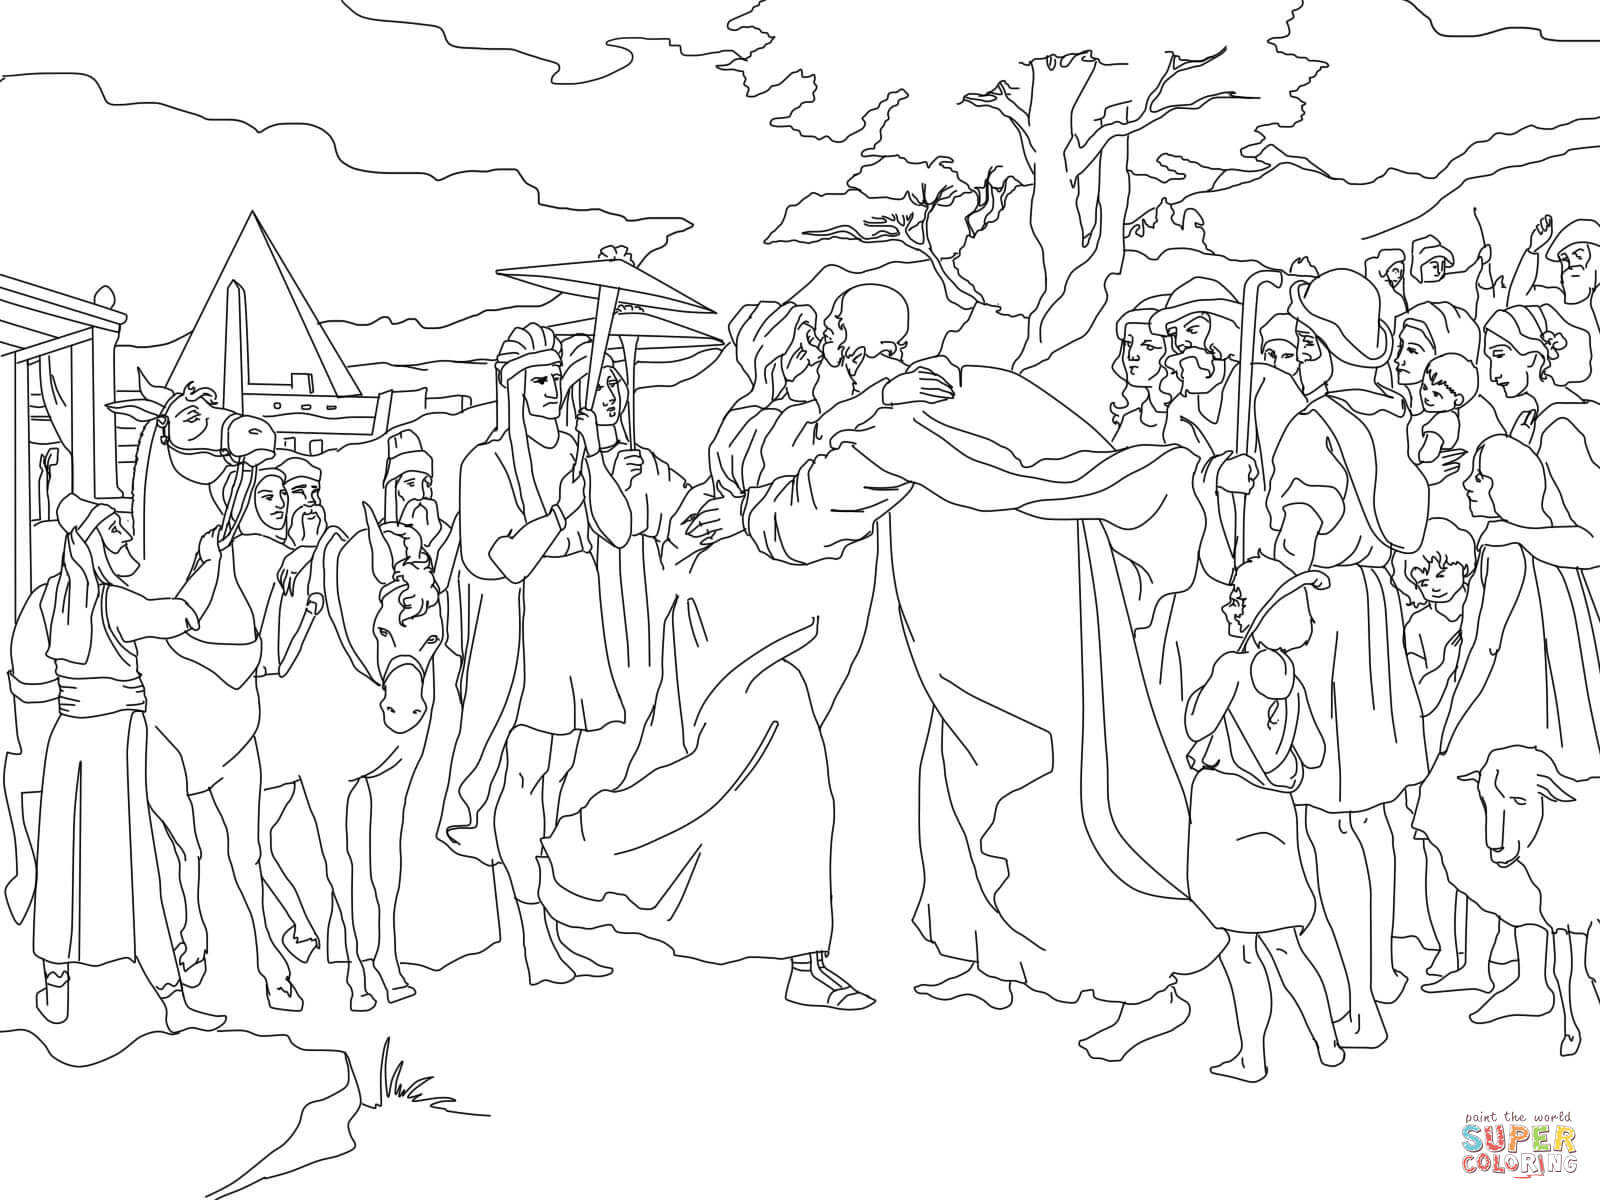 Worksheet Joseph And His Brothers